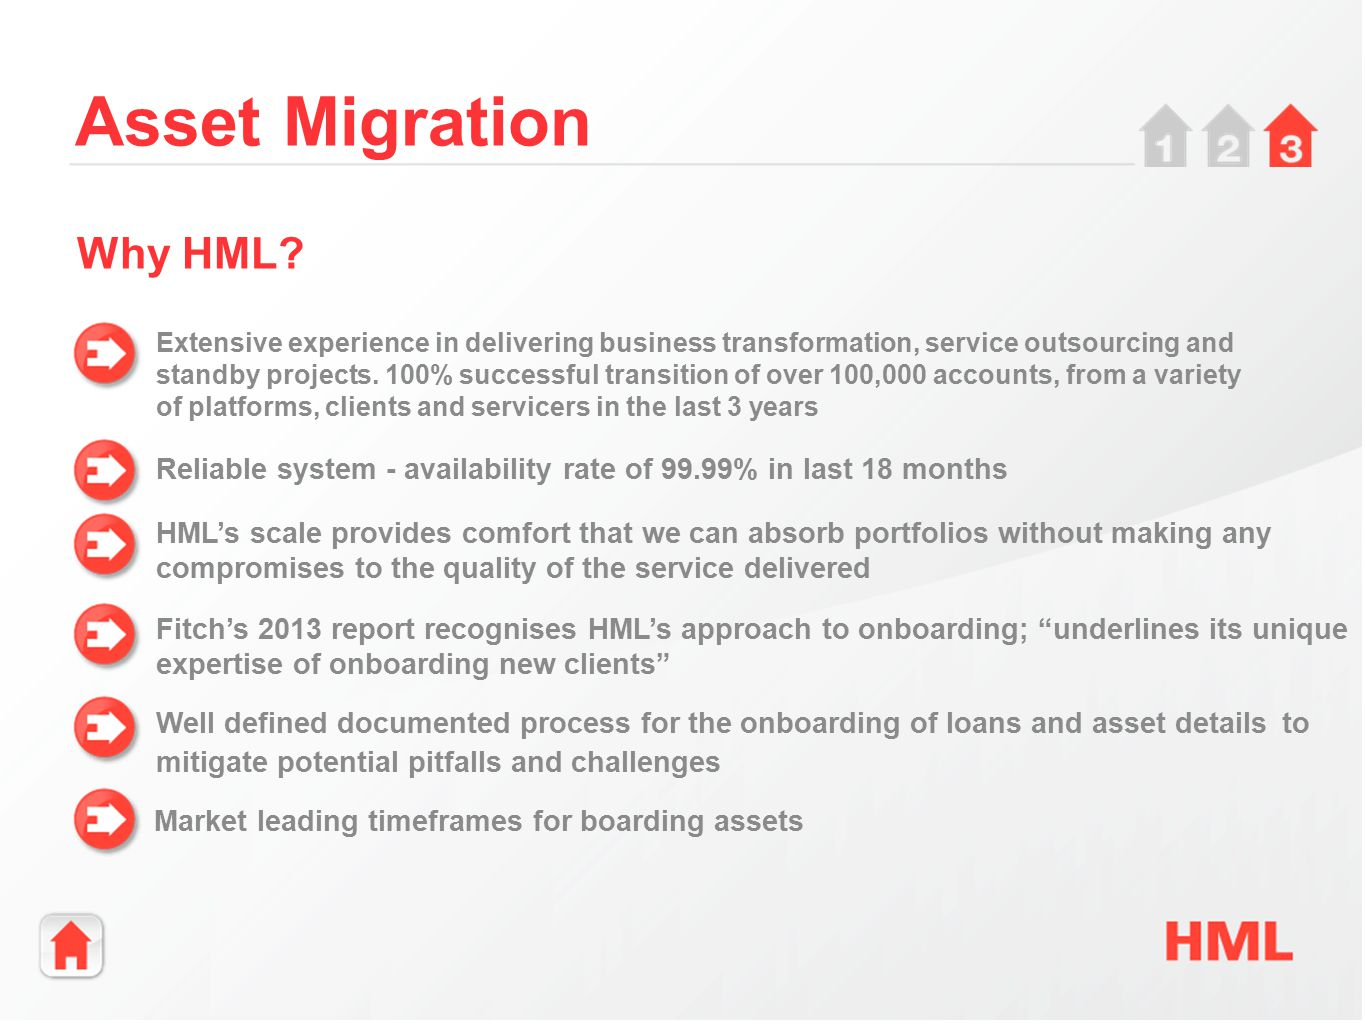 Asset Migration Extensive experience in delivering business transformation, service outsourcing and standby projects.